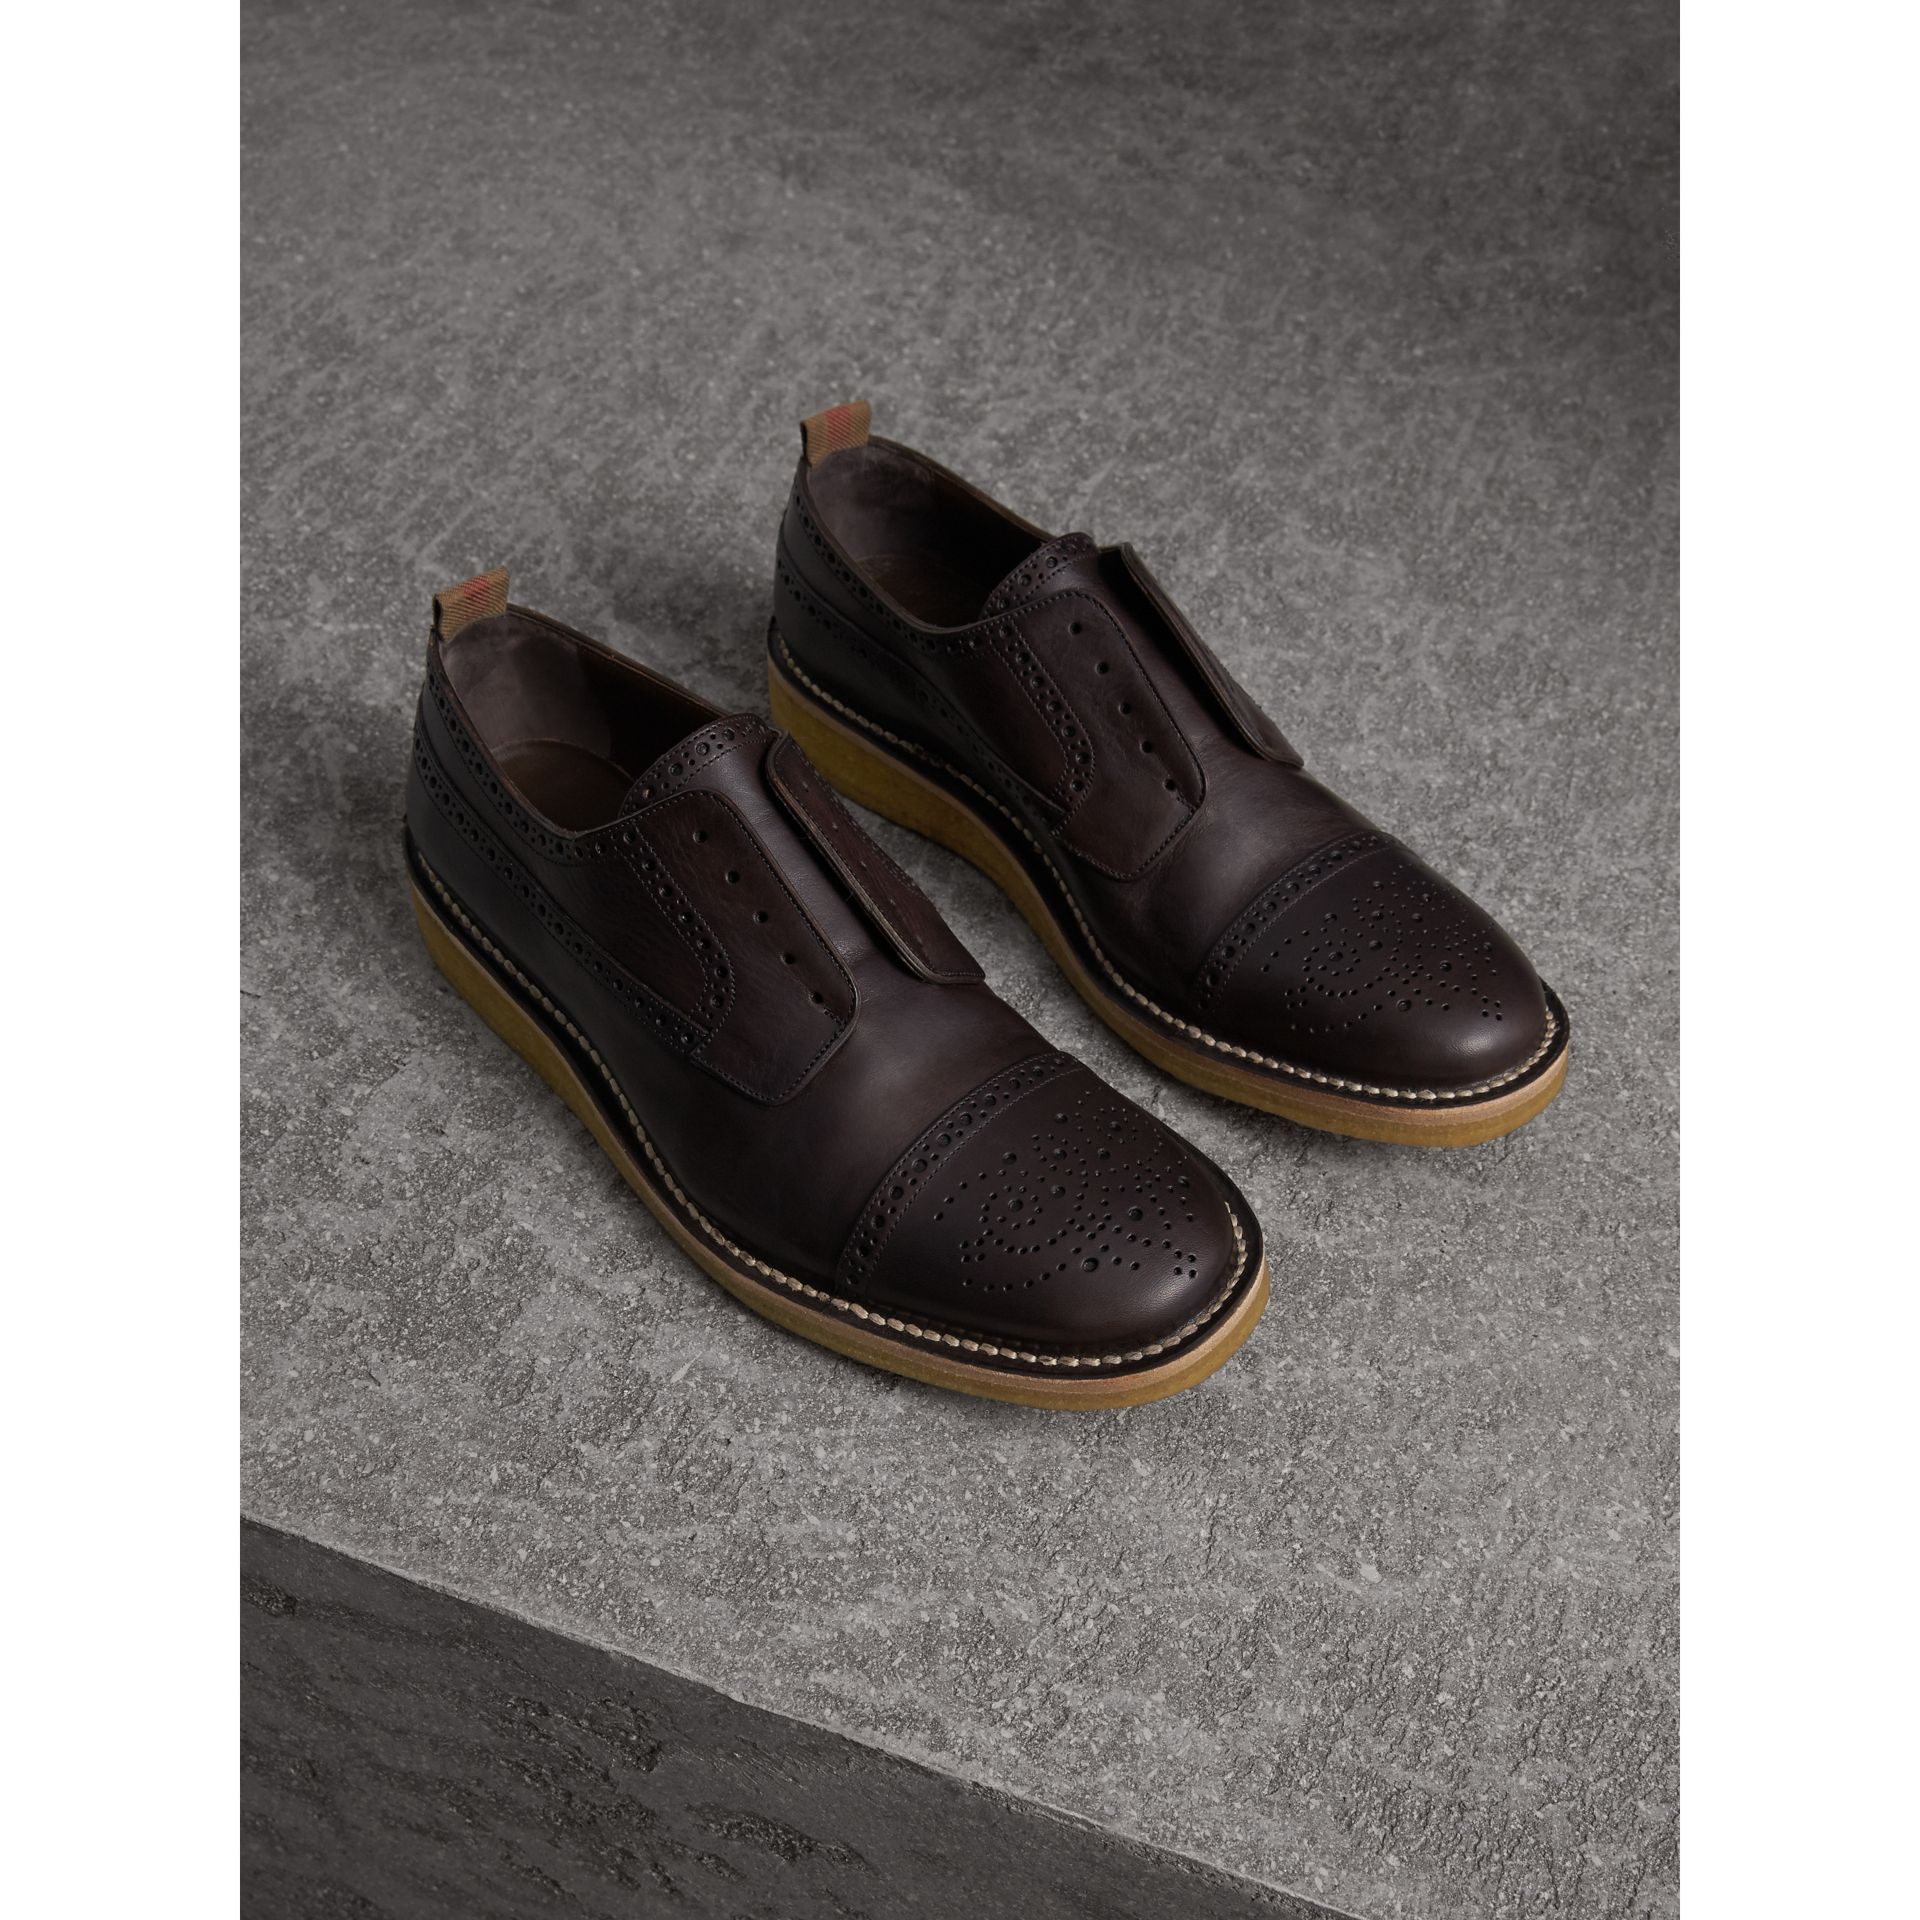 Raised Toe-cap Leather Brogues in Ebony - Men | Burberry Singapore - gallery image 1